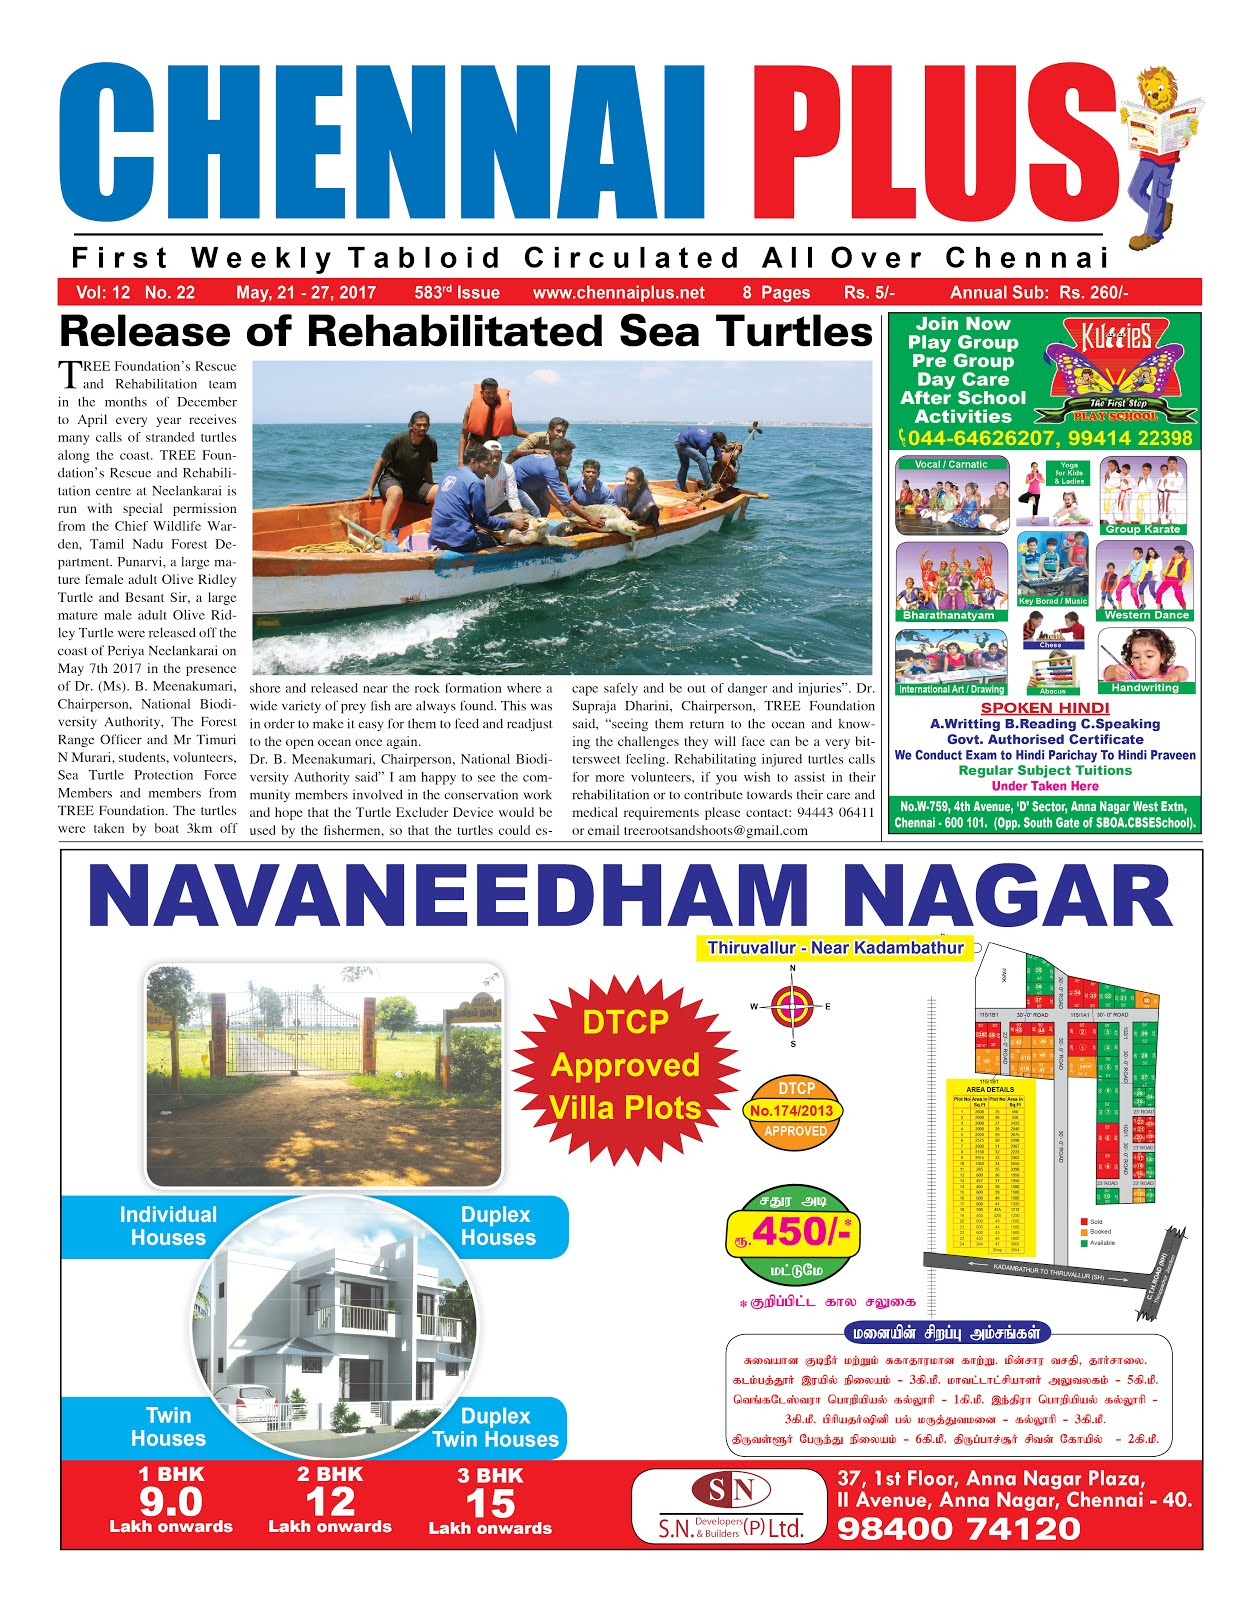 Chennai Plus_21.05.2017_Issue